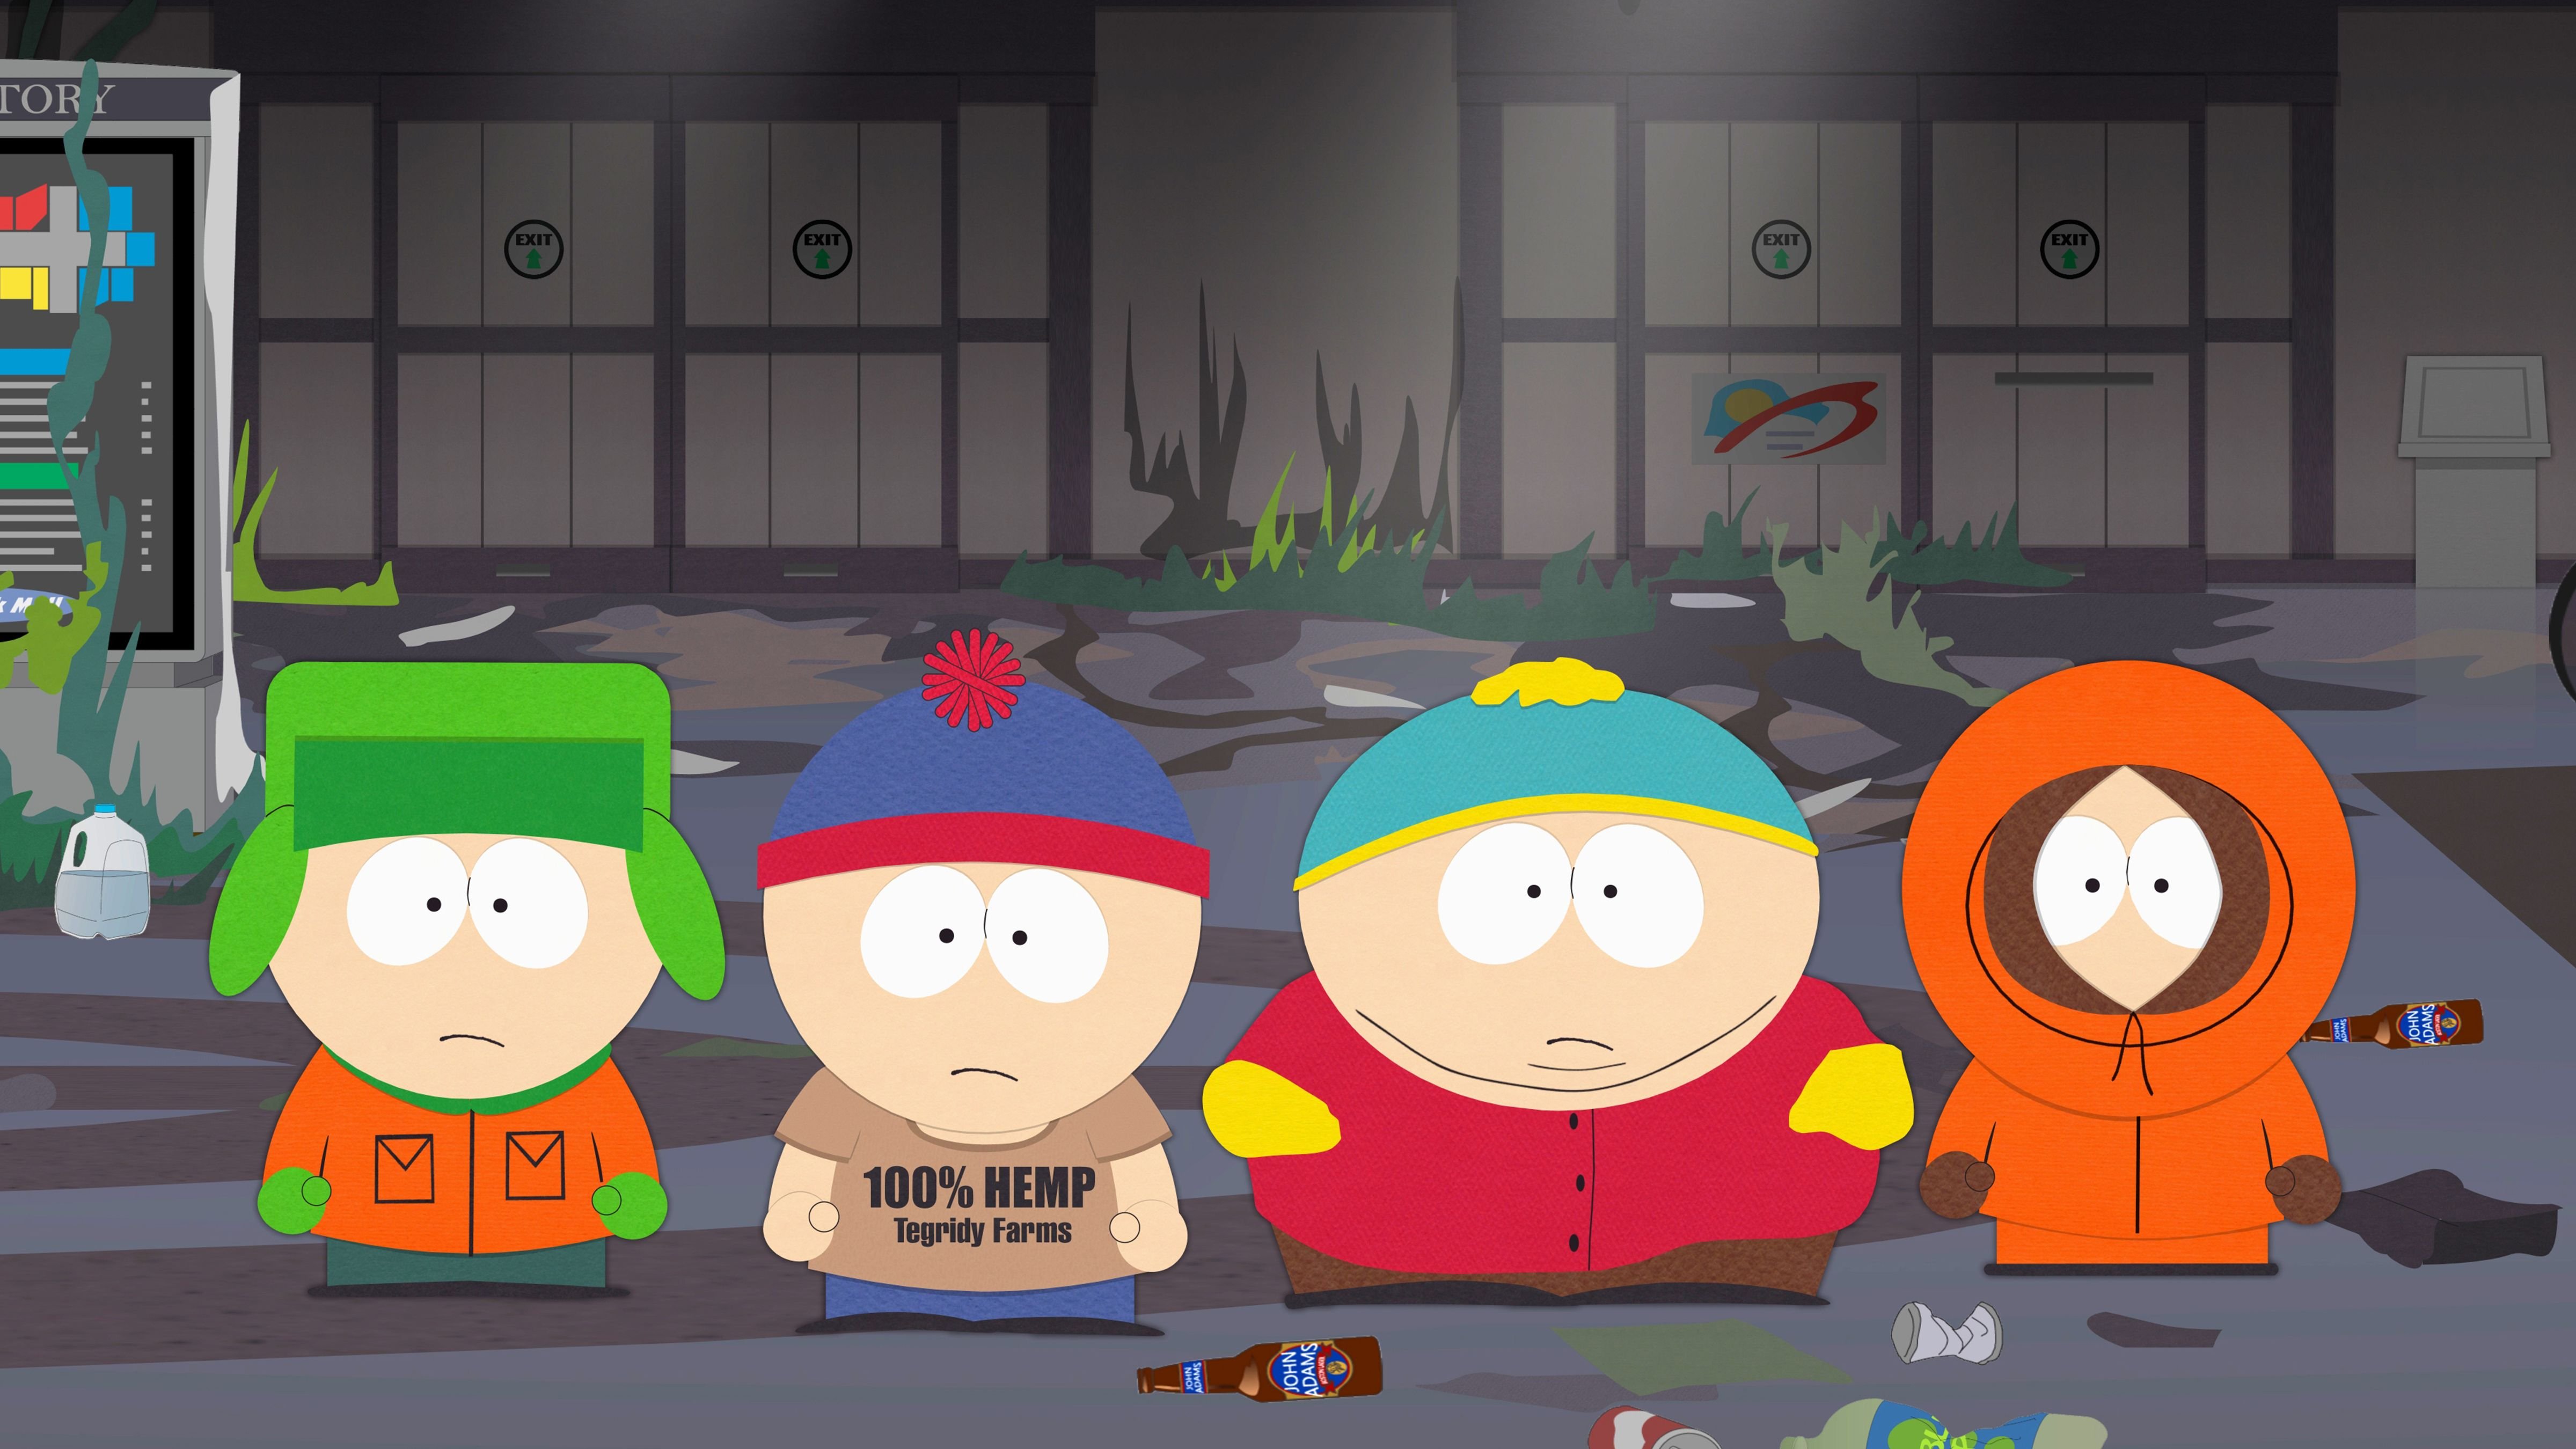 New South Park Episodes Look Like They Re Coming Next Month Based On This Tweet Techradar